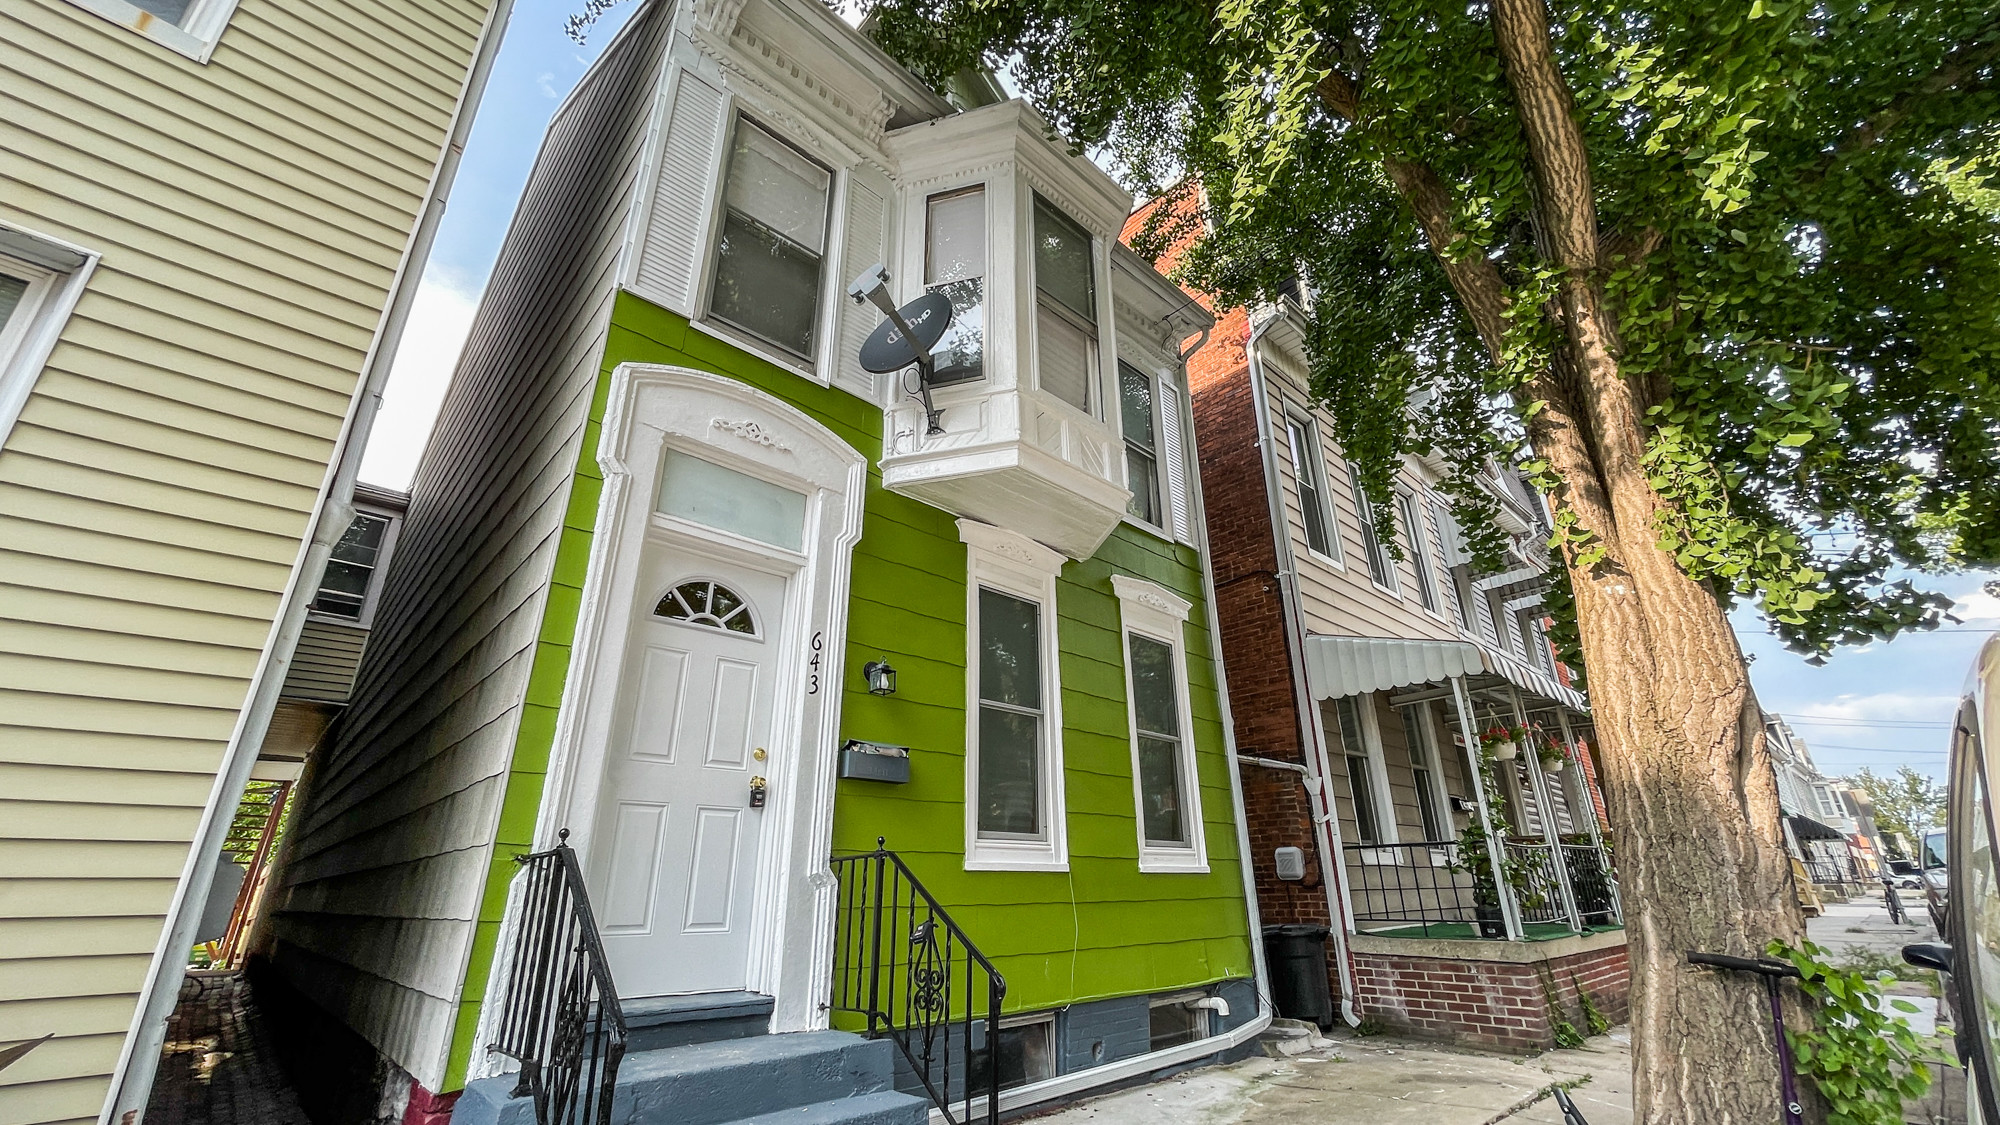 Remodeled 4-Bedroom House In The Avenues